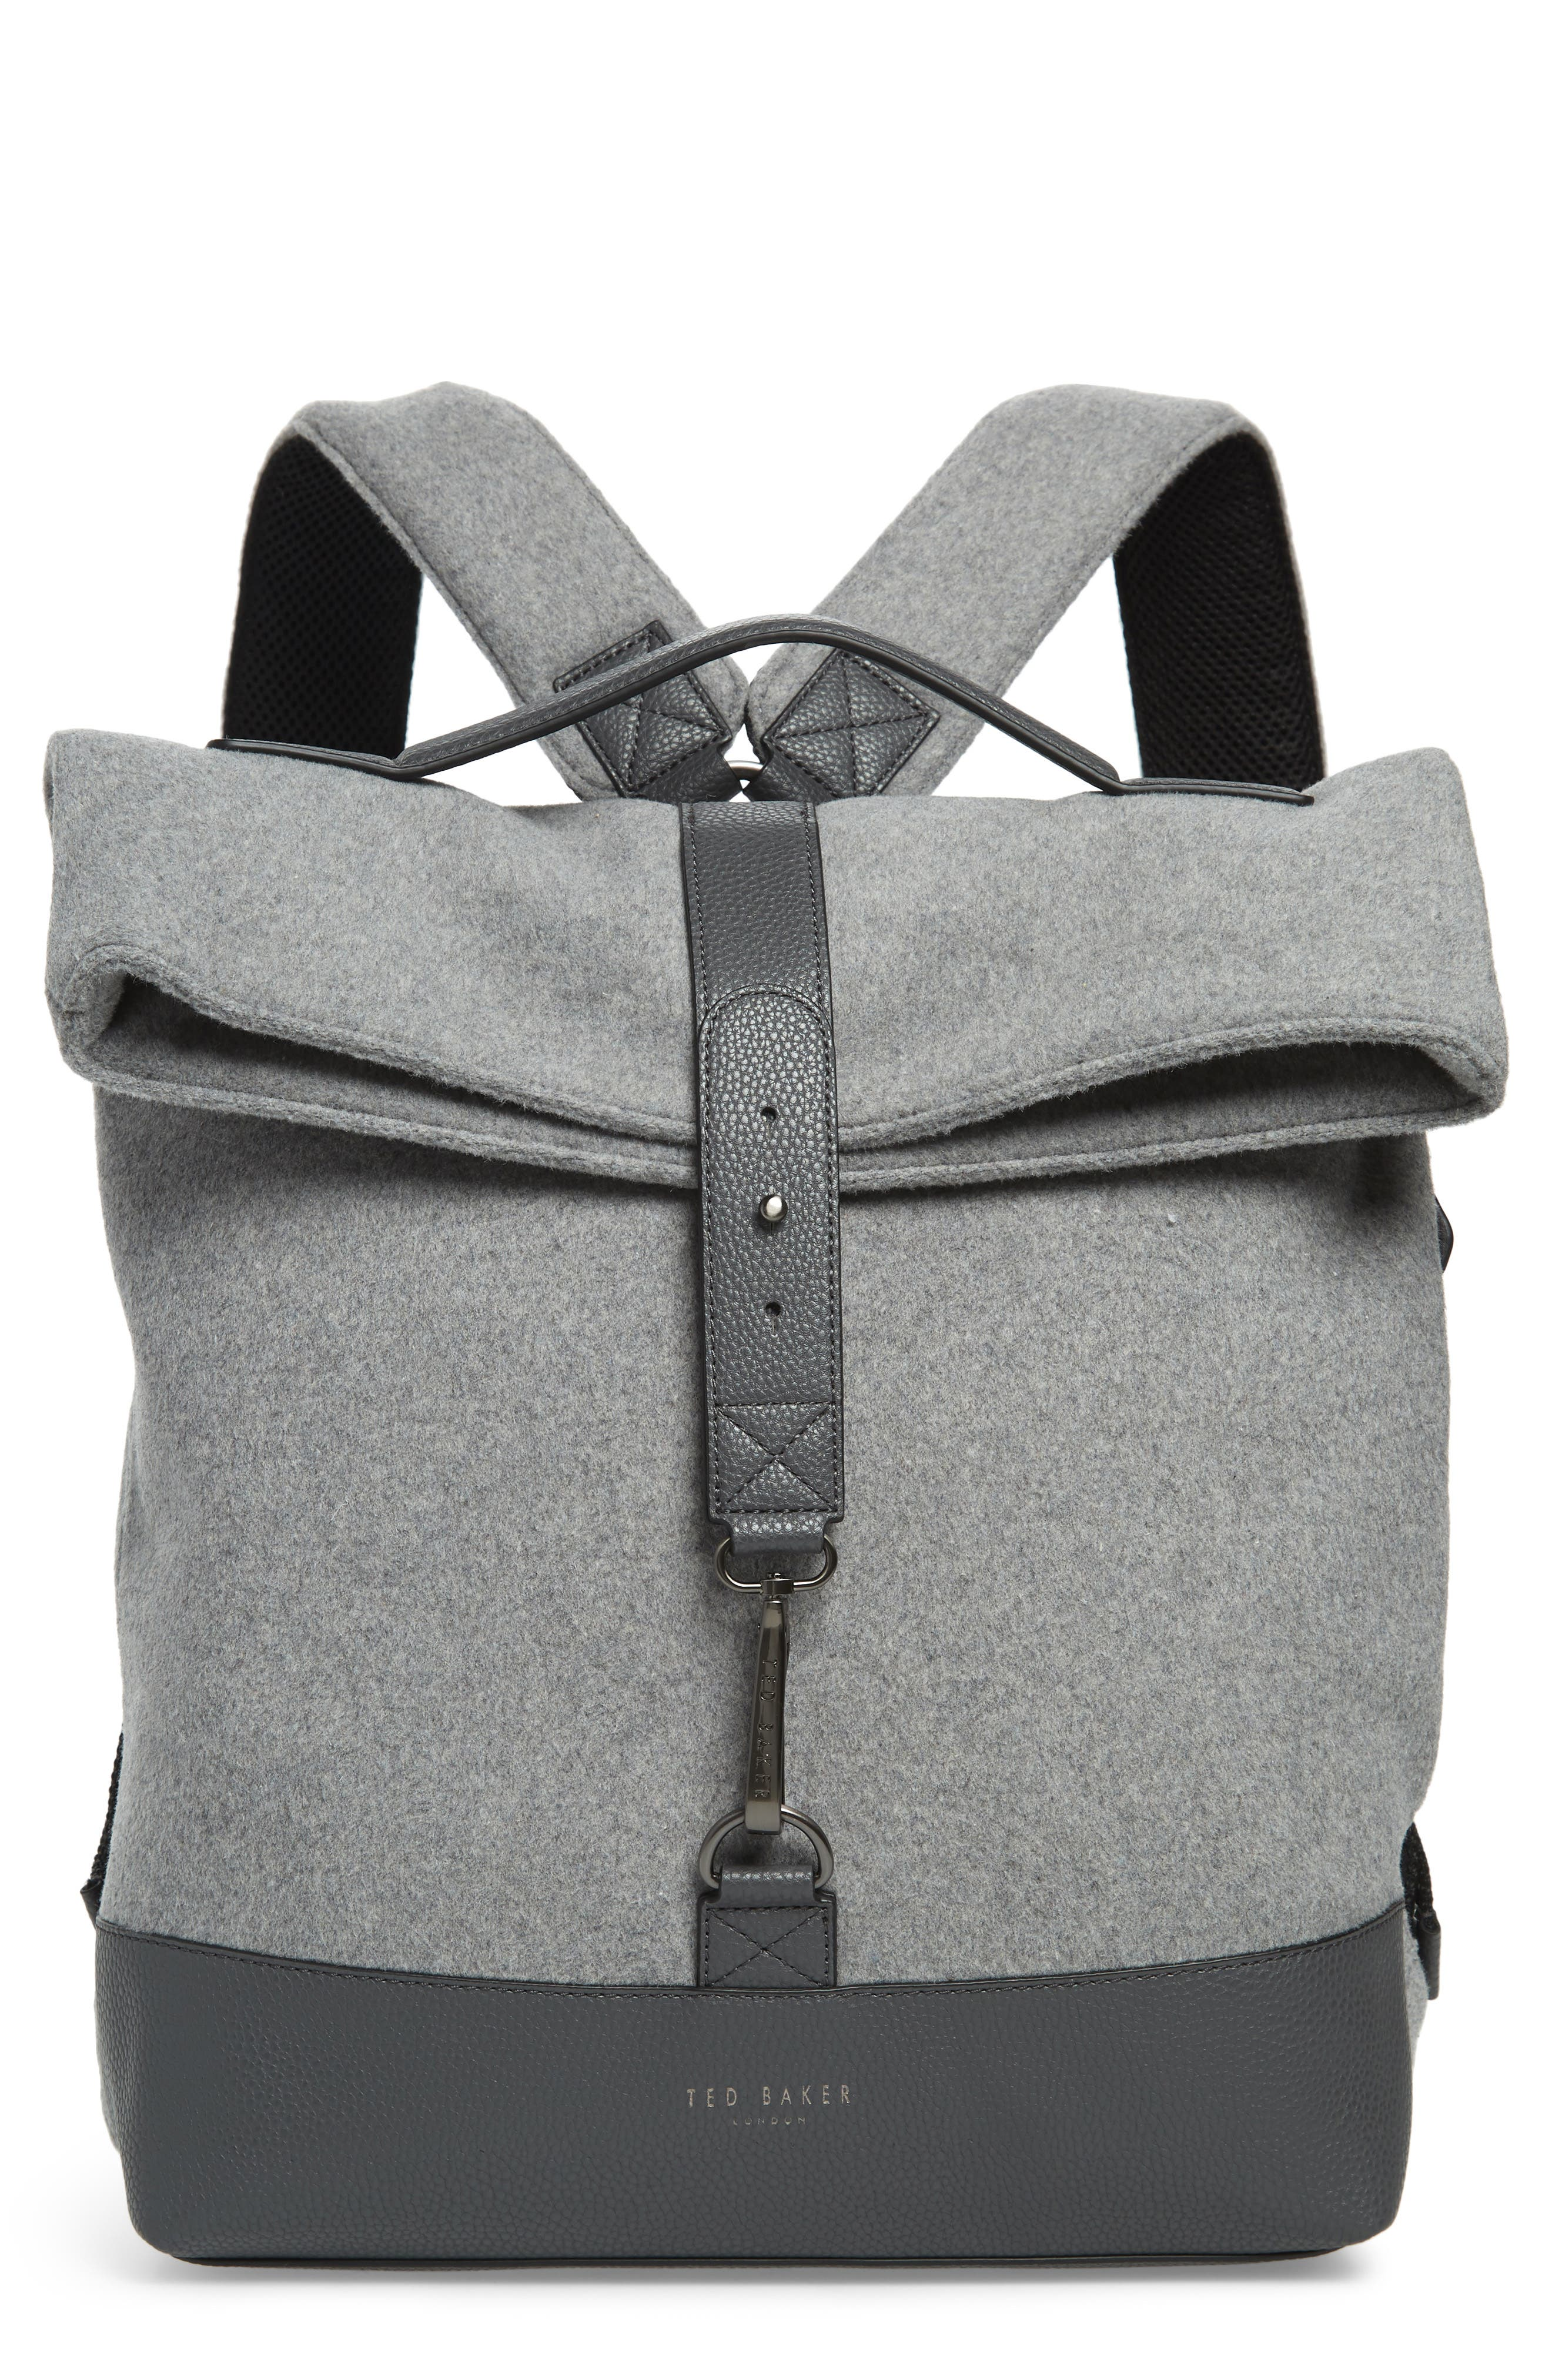 Cashed Backpack,                             Main thumbnail 1, color,                             GREY